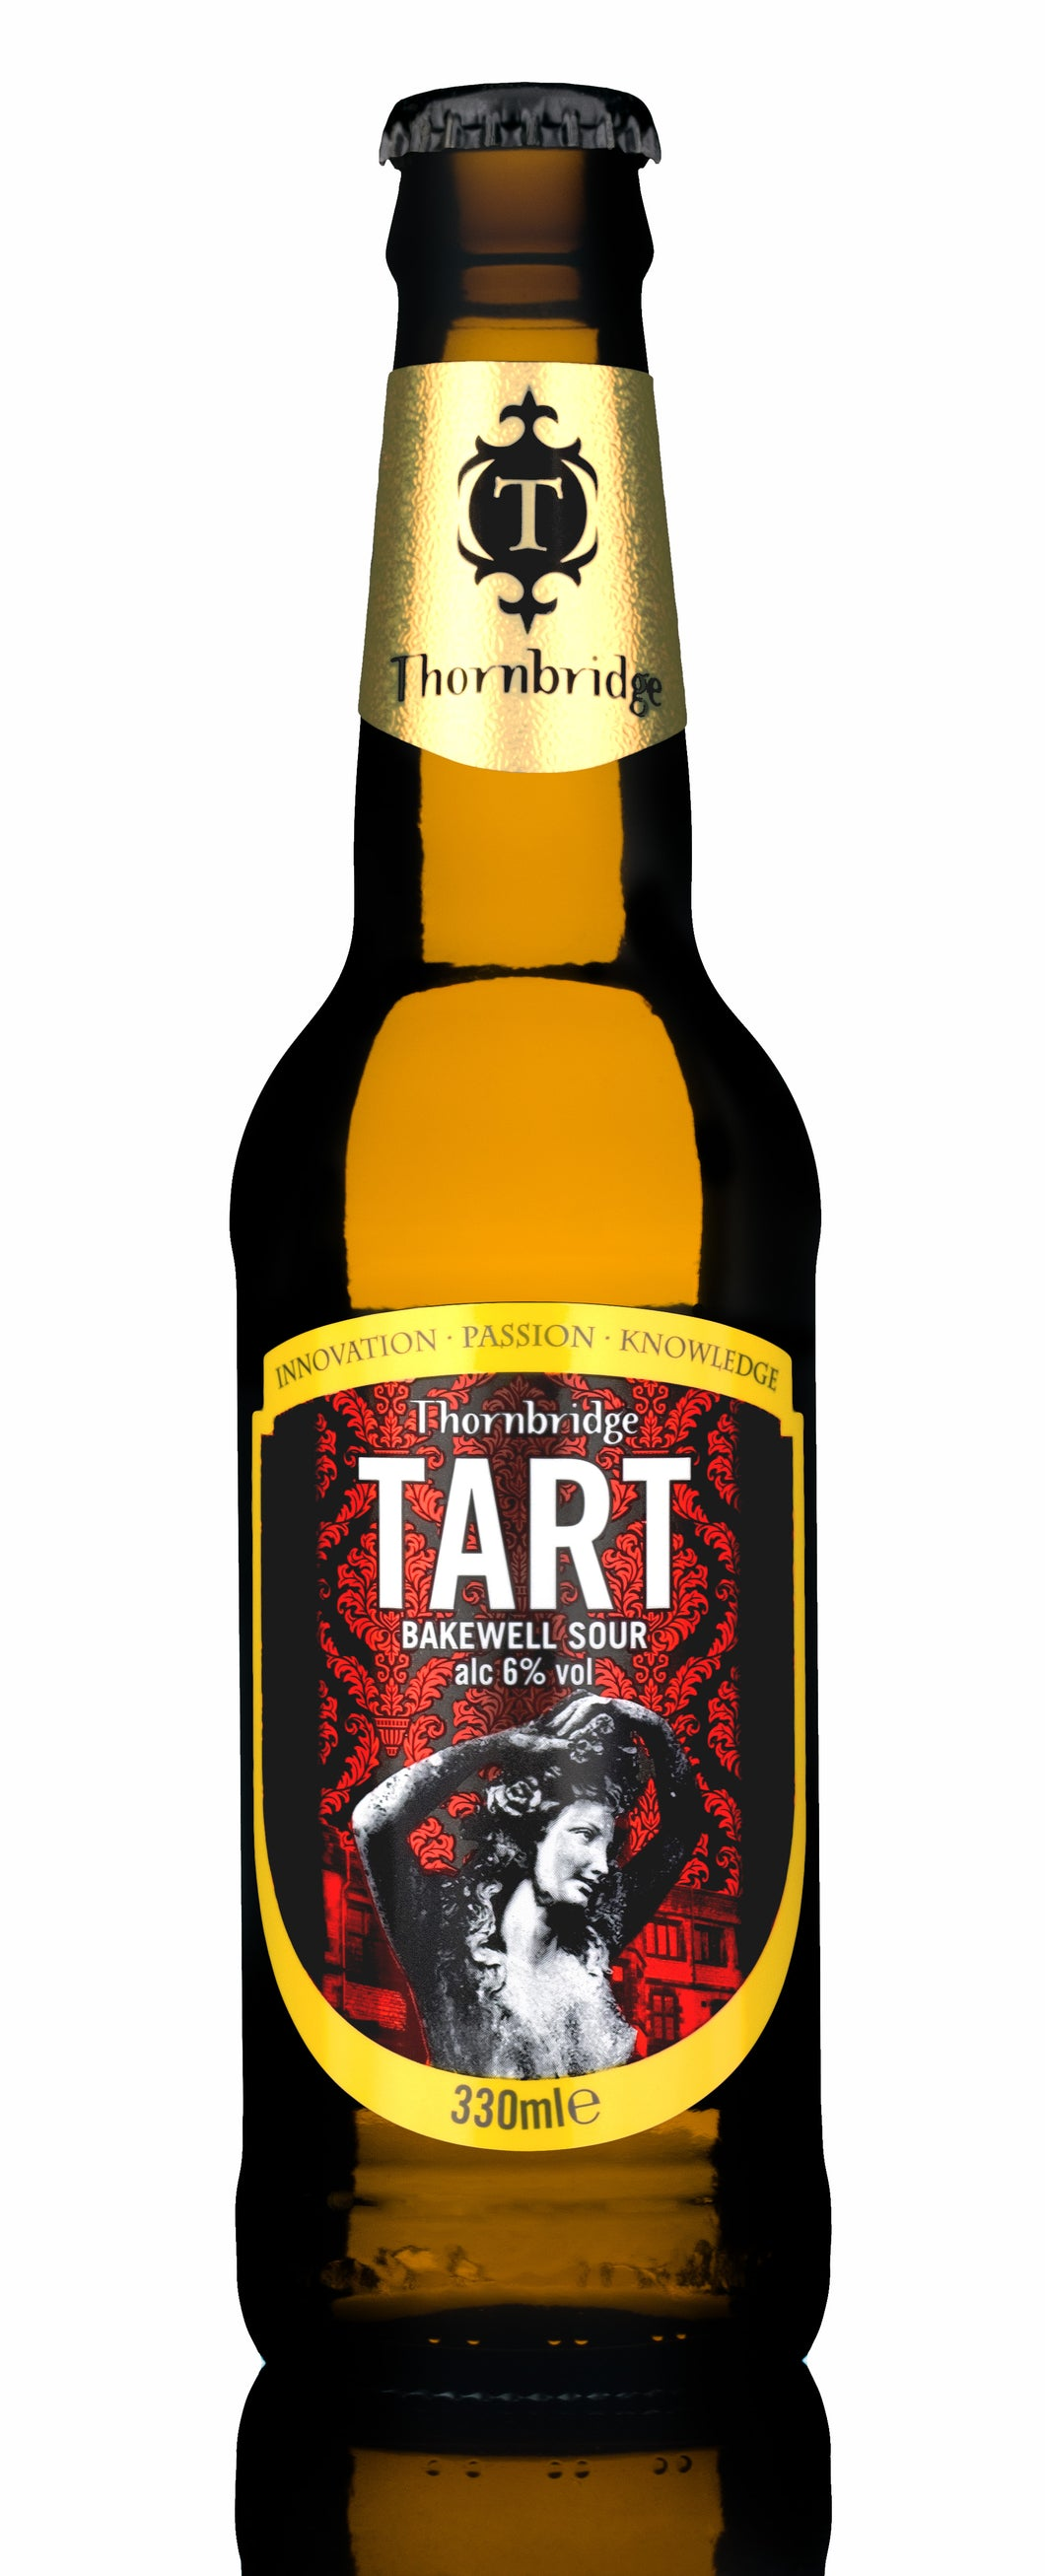 Thornbridge Tart Bakewell Sour